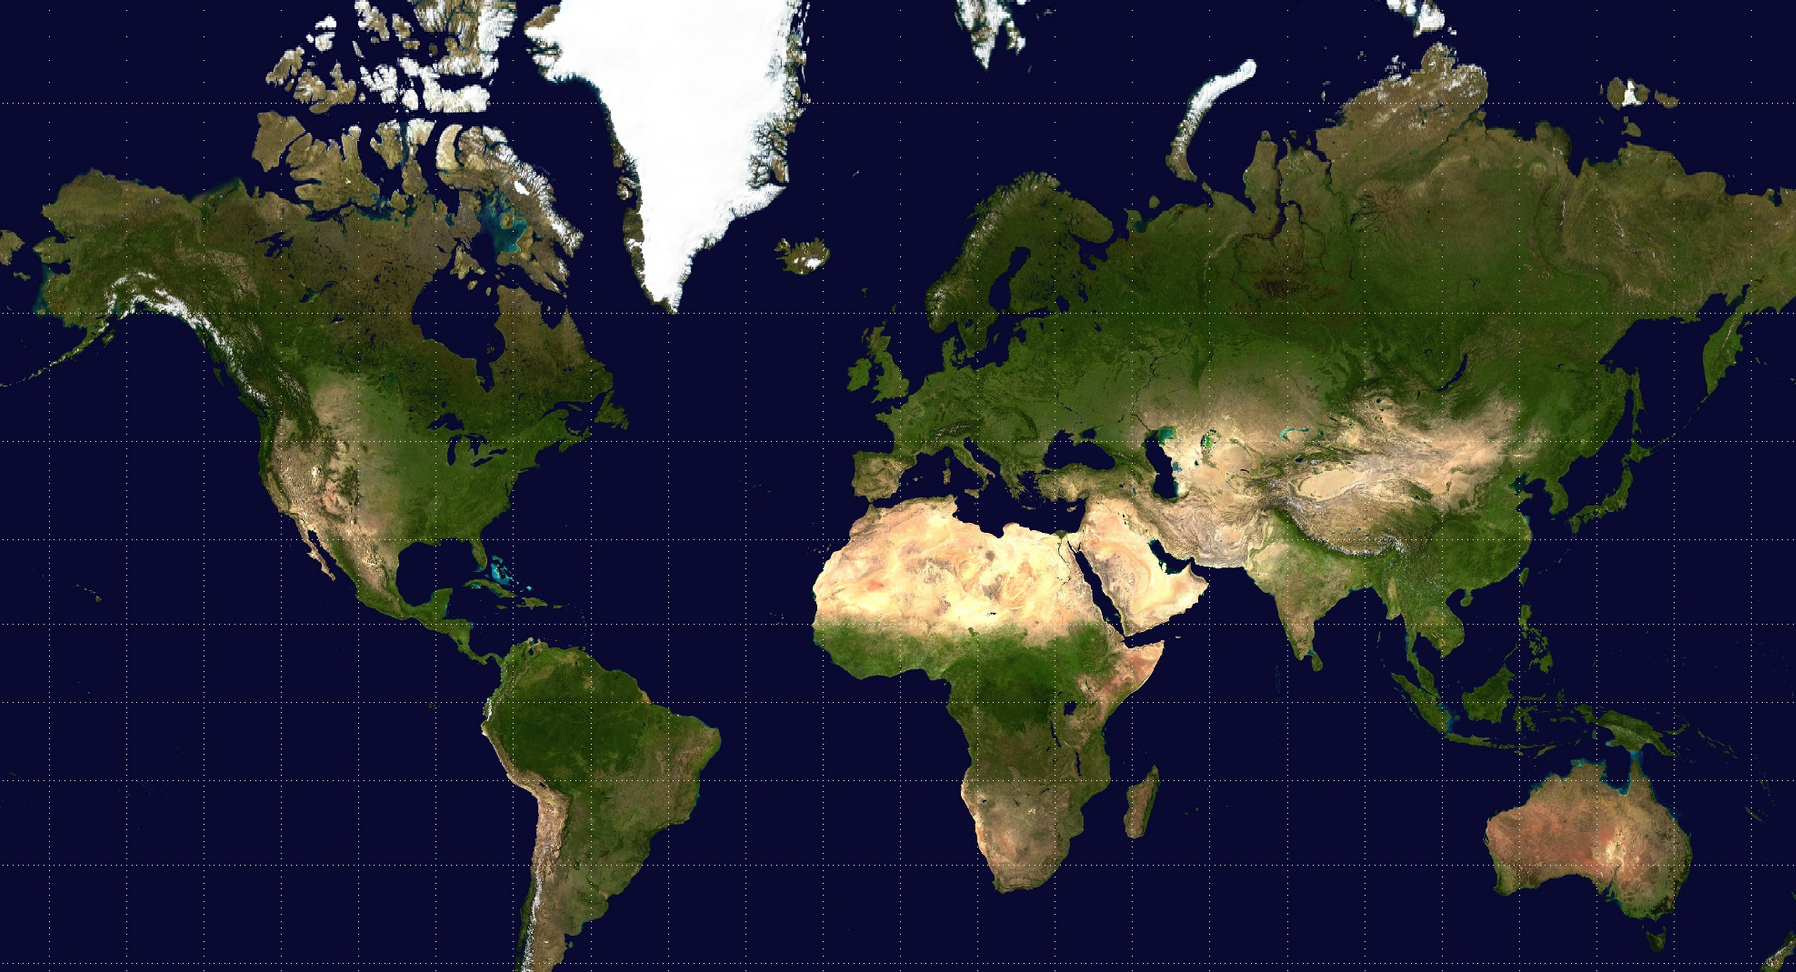 Here's Why Flat Maps of the World Aren't Drawn to Scale | Videos on business map, apartment map, home map, land map, projection map, wall map, treasure map, red map, plate map, tube map, fake map, big map, full map, large map, classic map, thematic map, antarctica map, empty map,